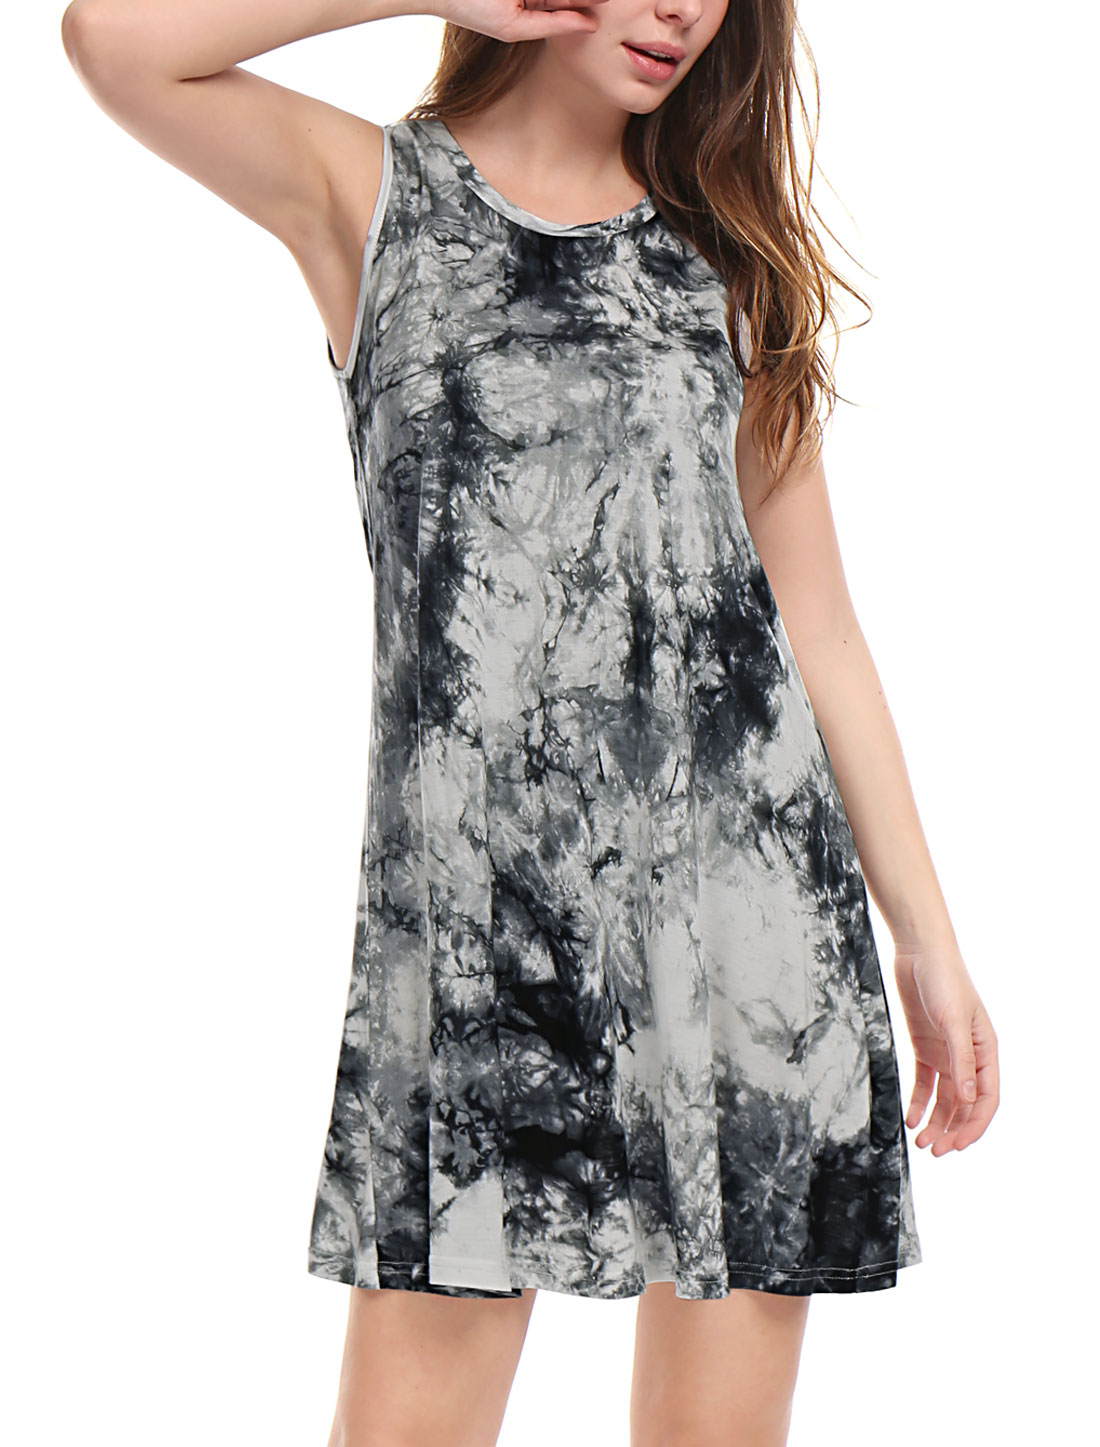 Unique Bargains Women Dress Above Knee Tie-Dye Dress Black L (US 14)